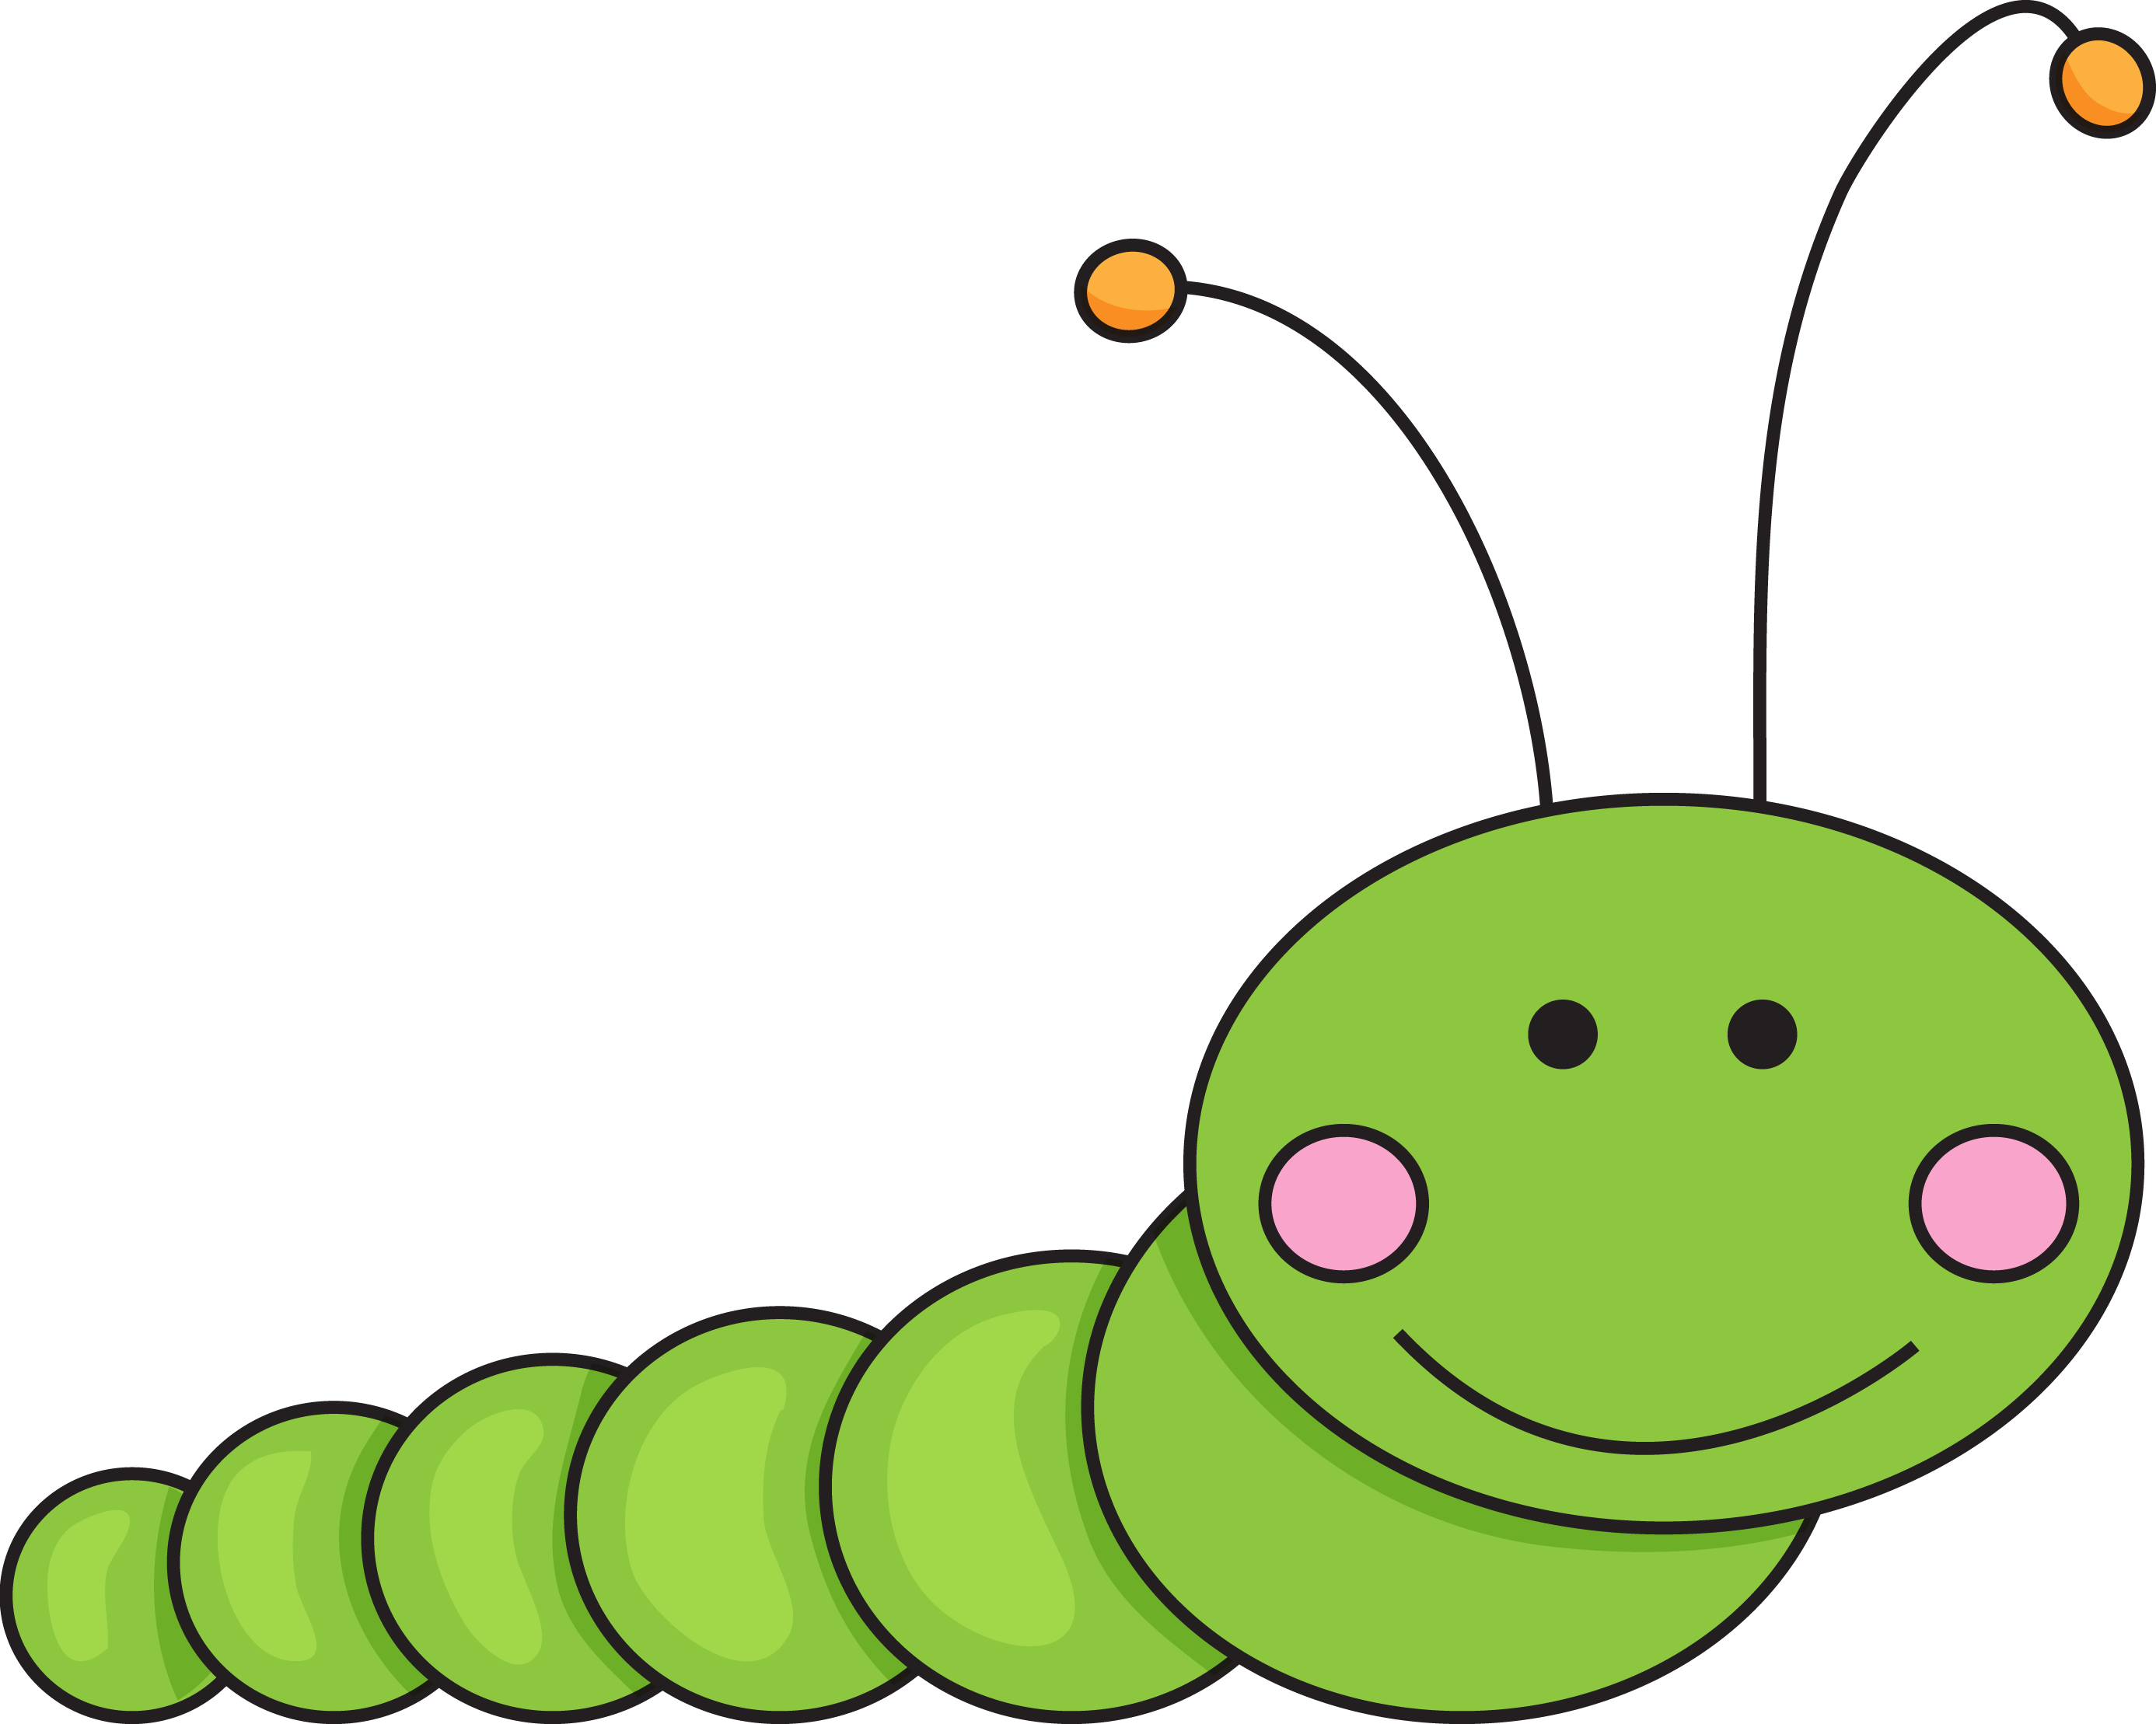 Caterpillar Clipart at GetDrawings.com.